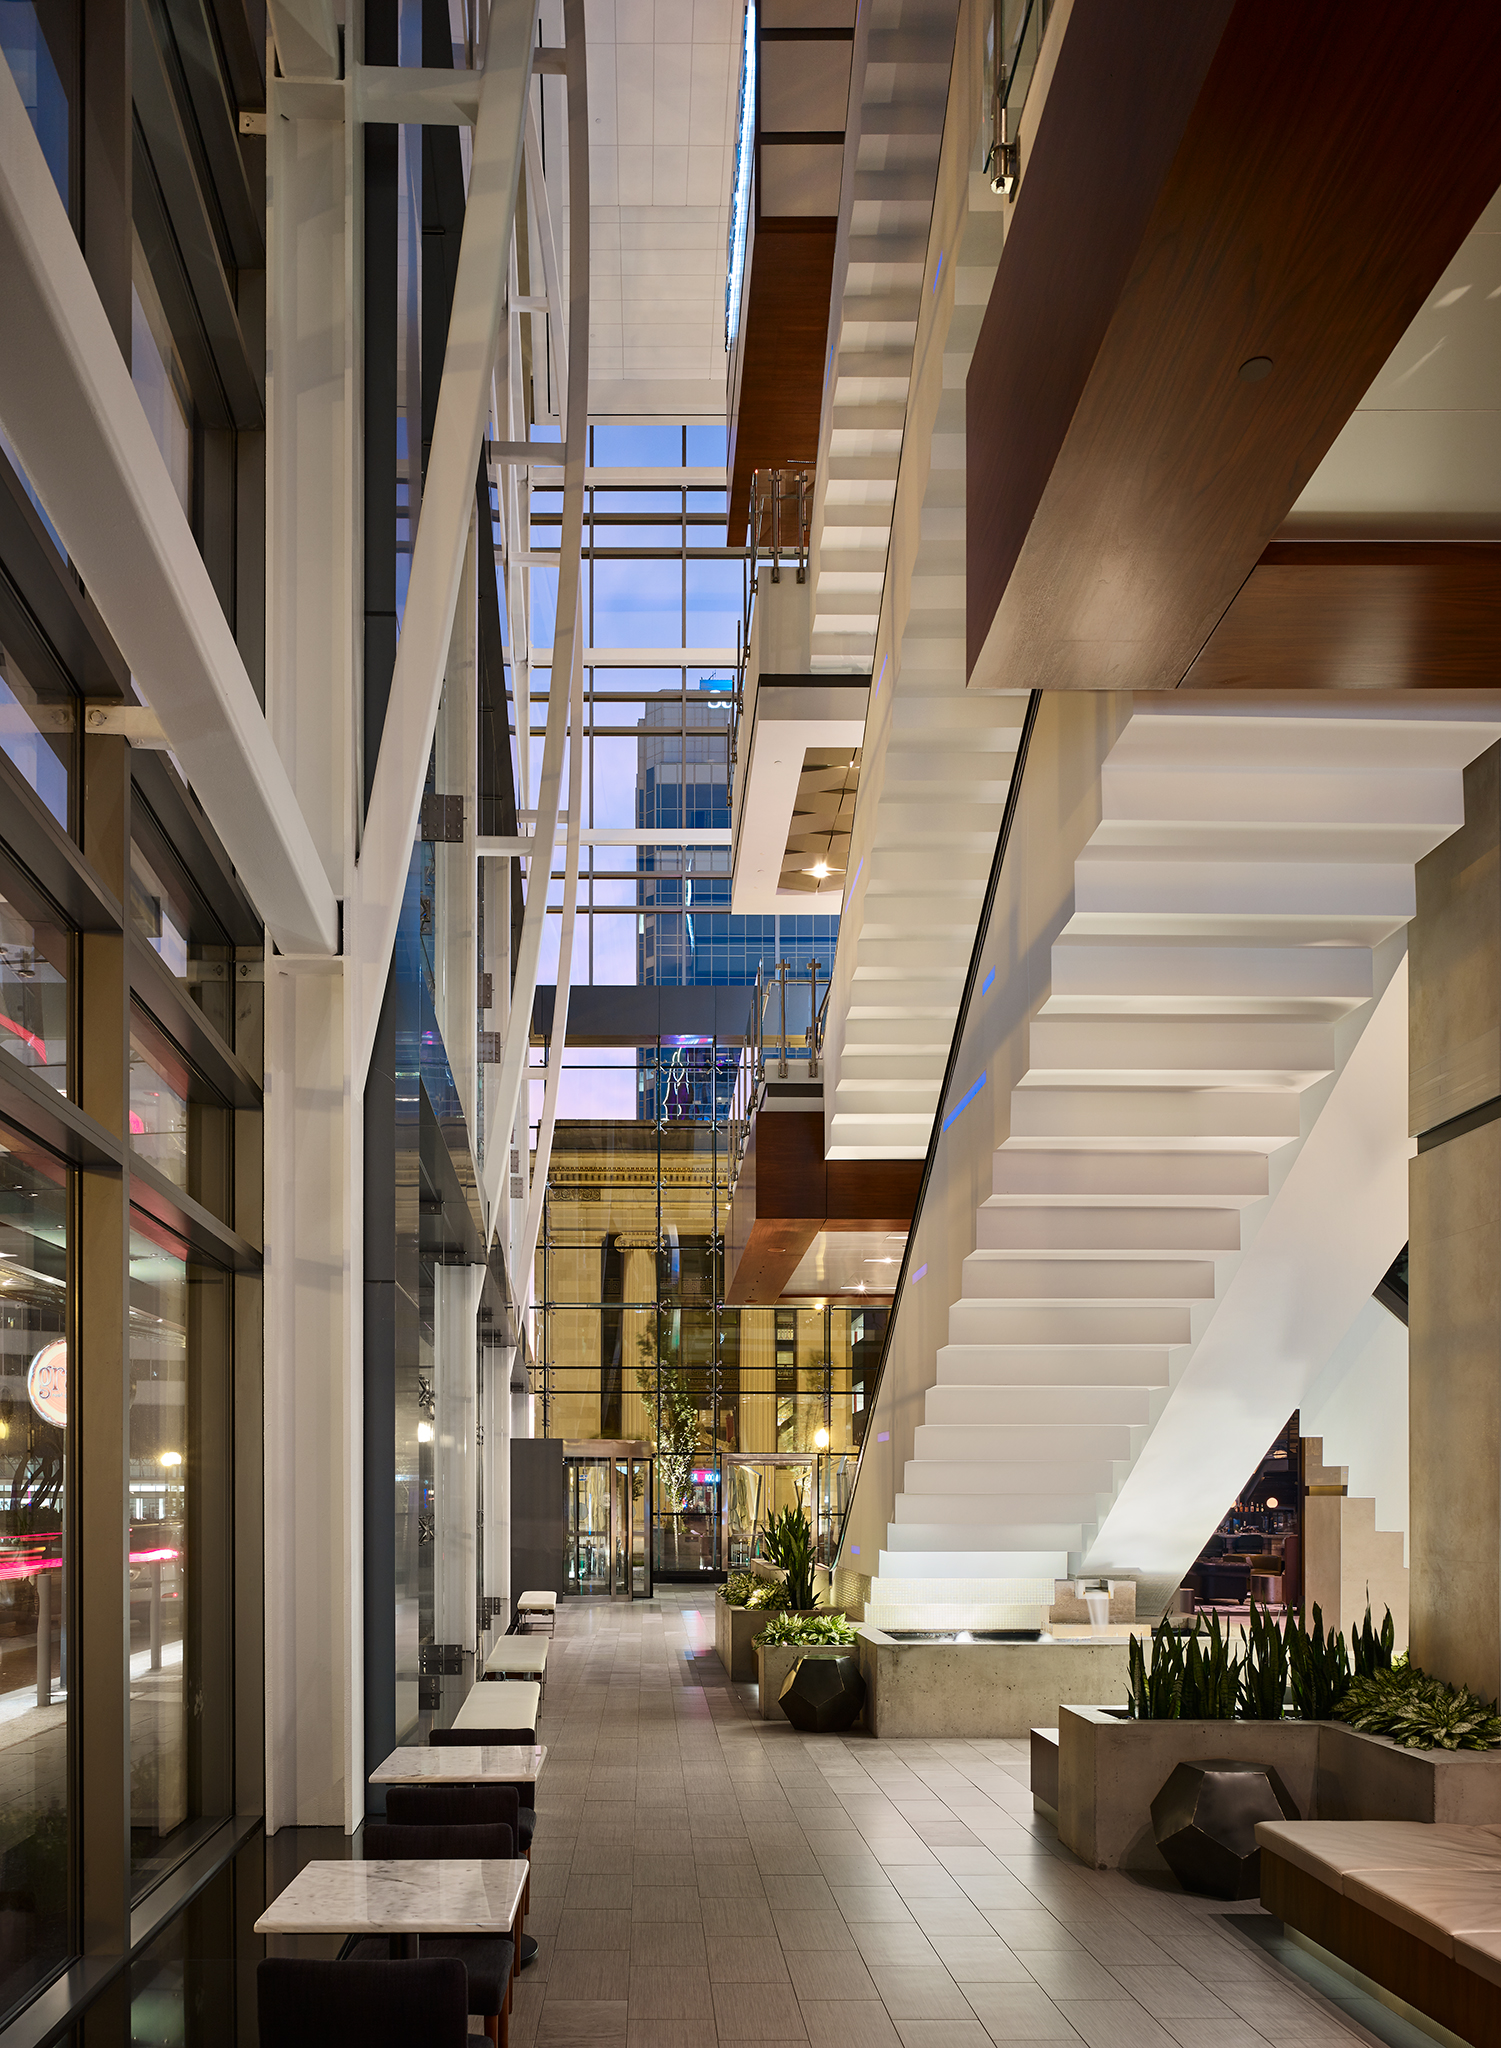 The Main, Hilton Hotel  Cooper Carry Architects  Norfolk, Virginia      Return to Projects